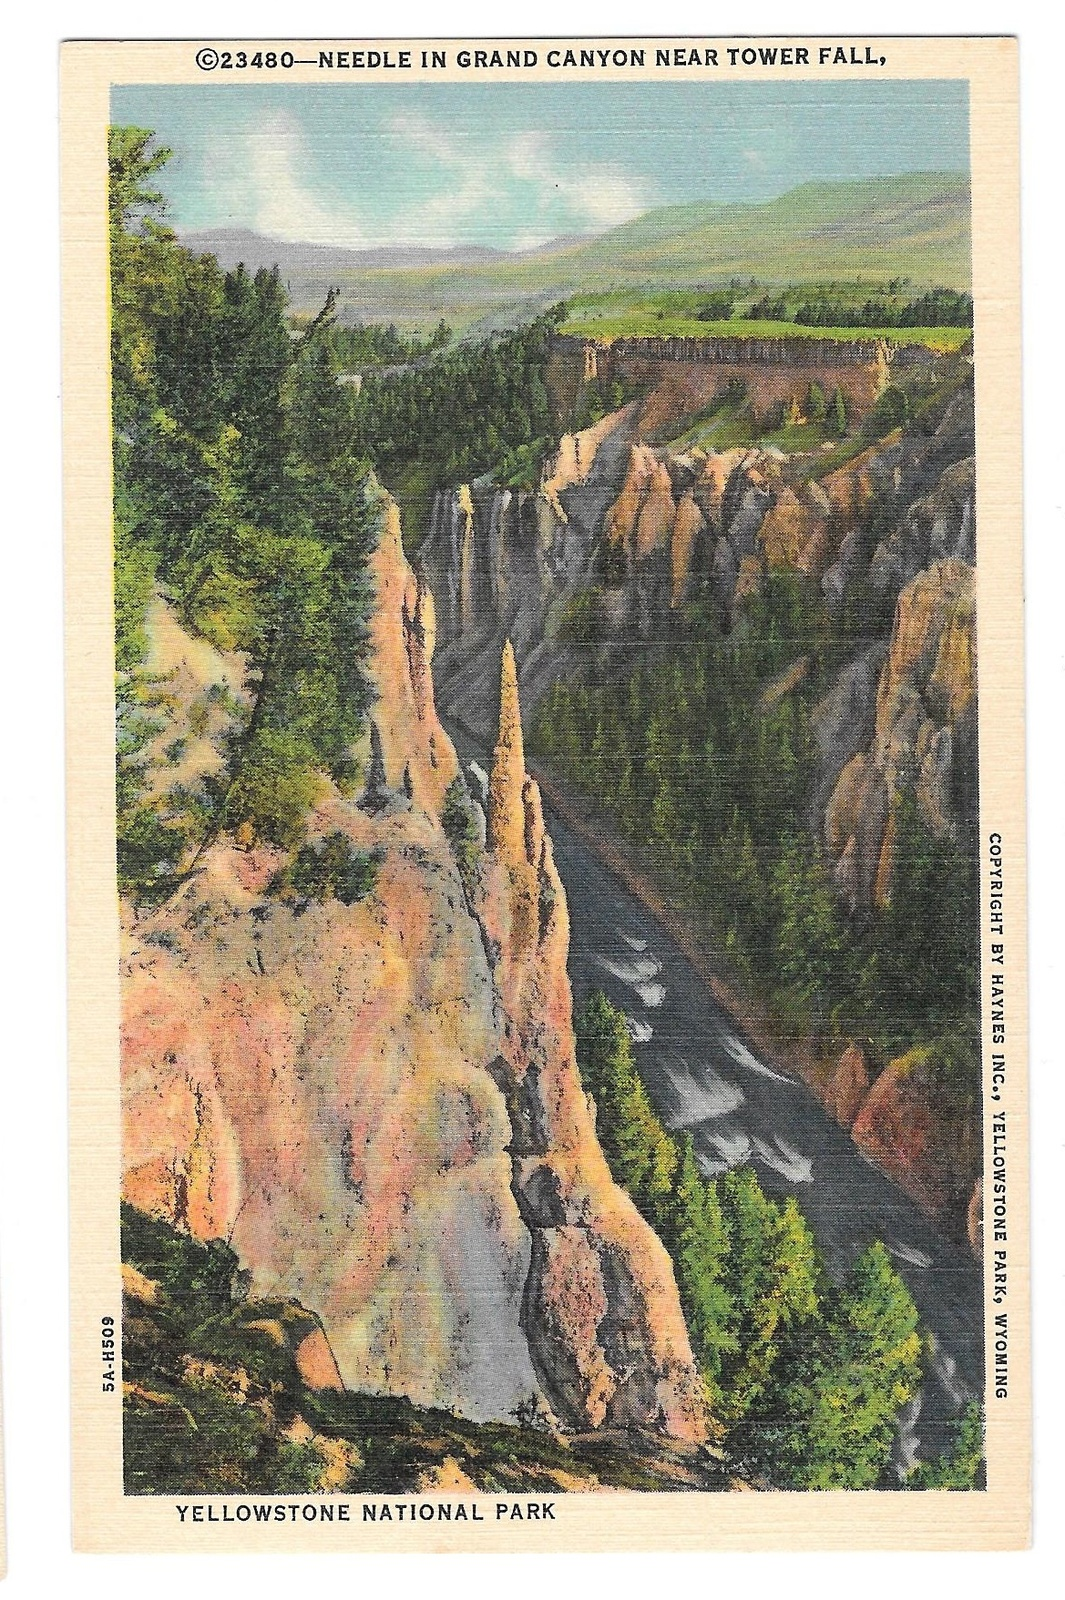 99 br 1925 1bx yellowstone needle in grand canyon near tower falls